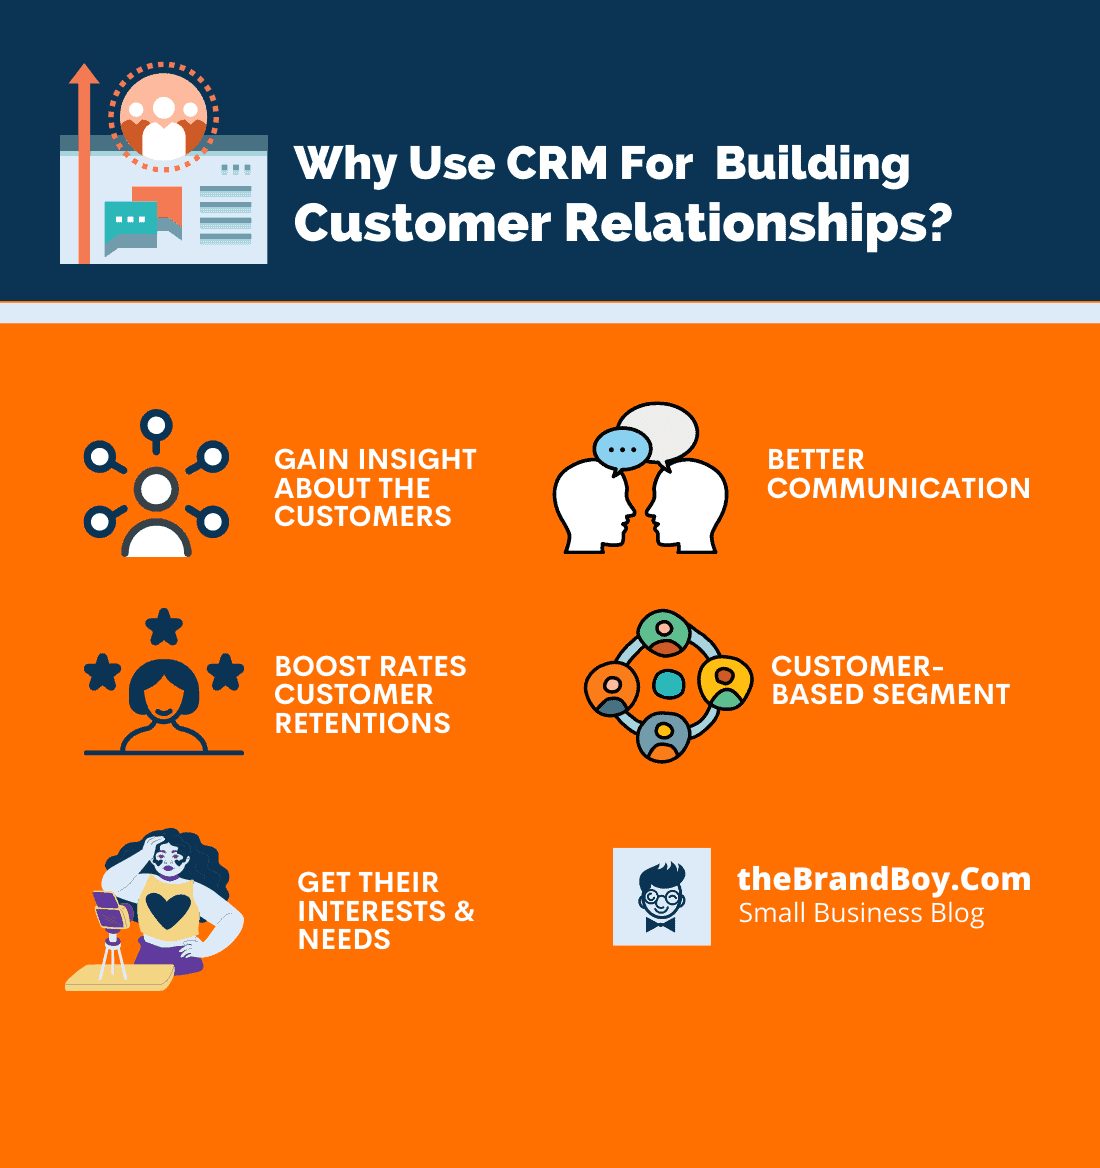 why use crm for Customer relationships